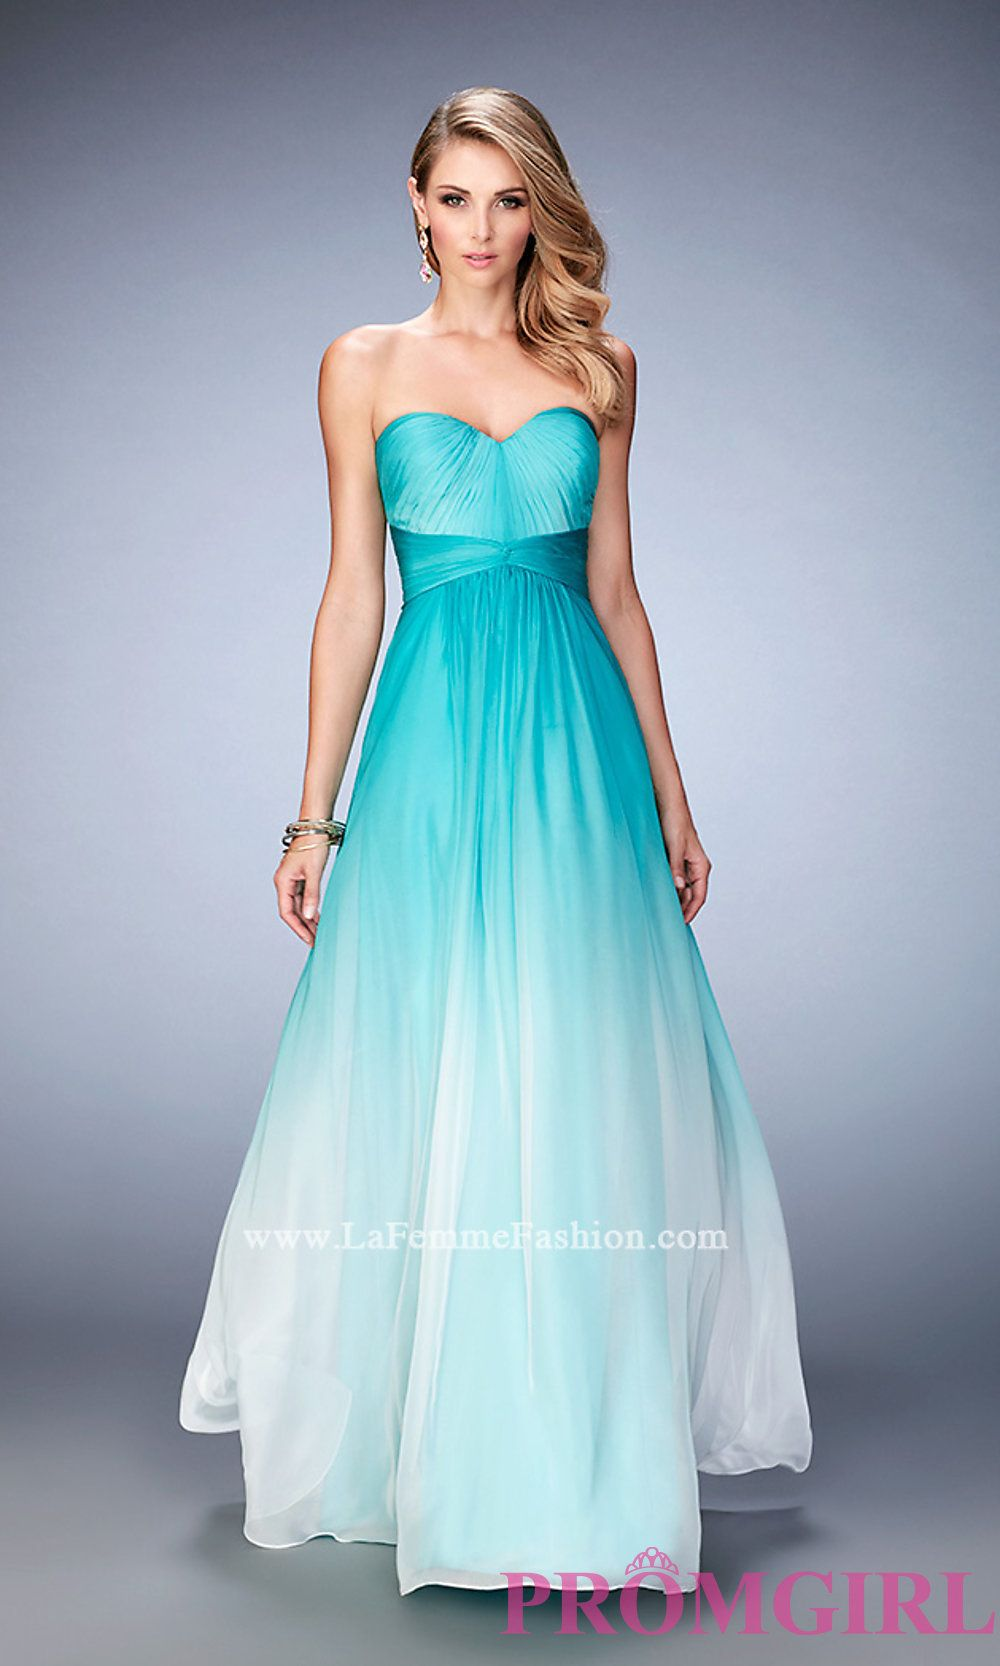 Empire Waist Long Ombre Strapless Prom Dress Style: LF-22880 ...